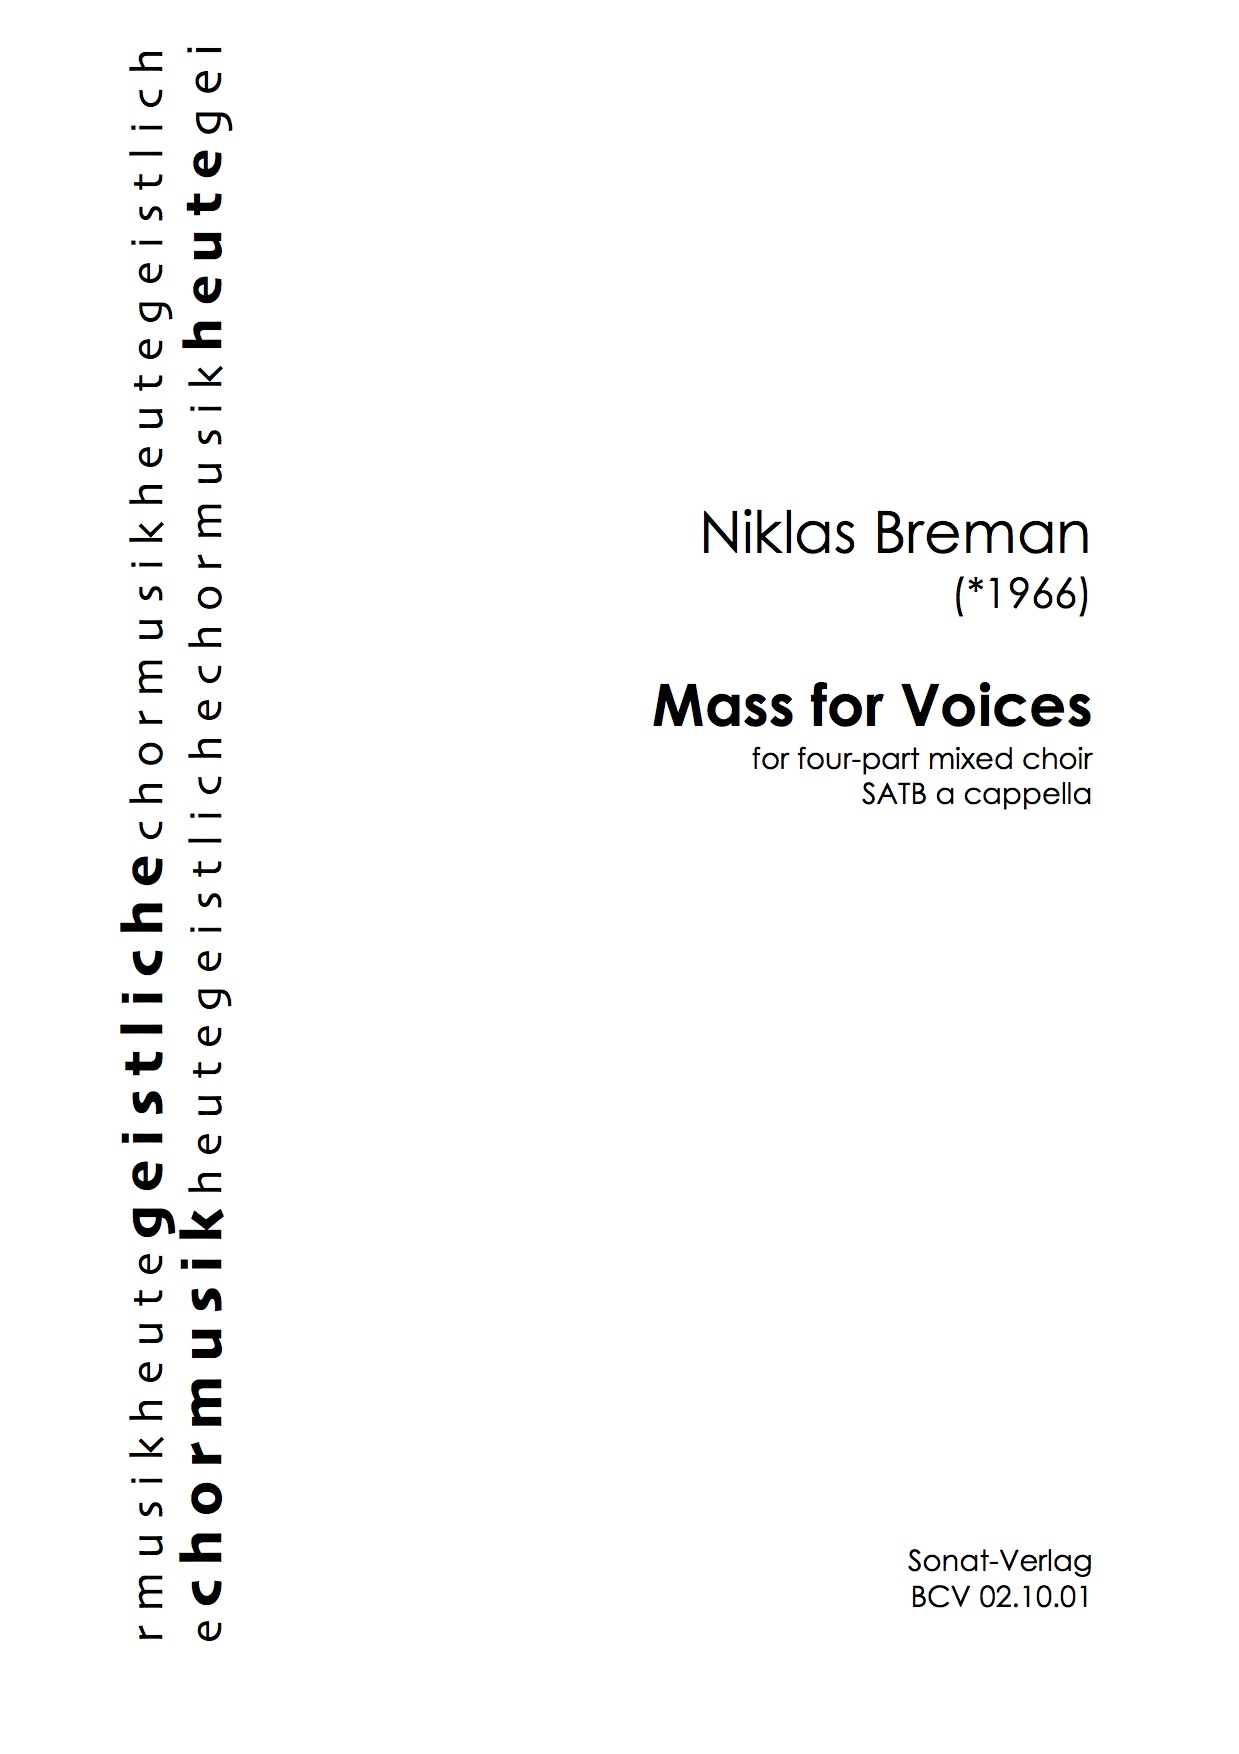 Mass for Voices